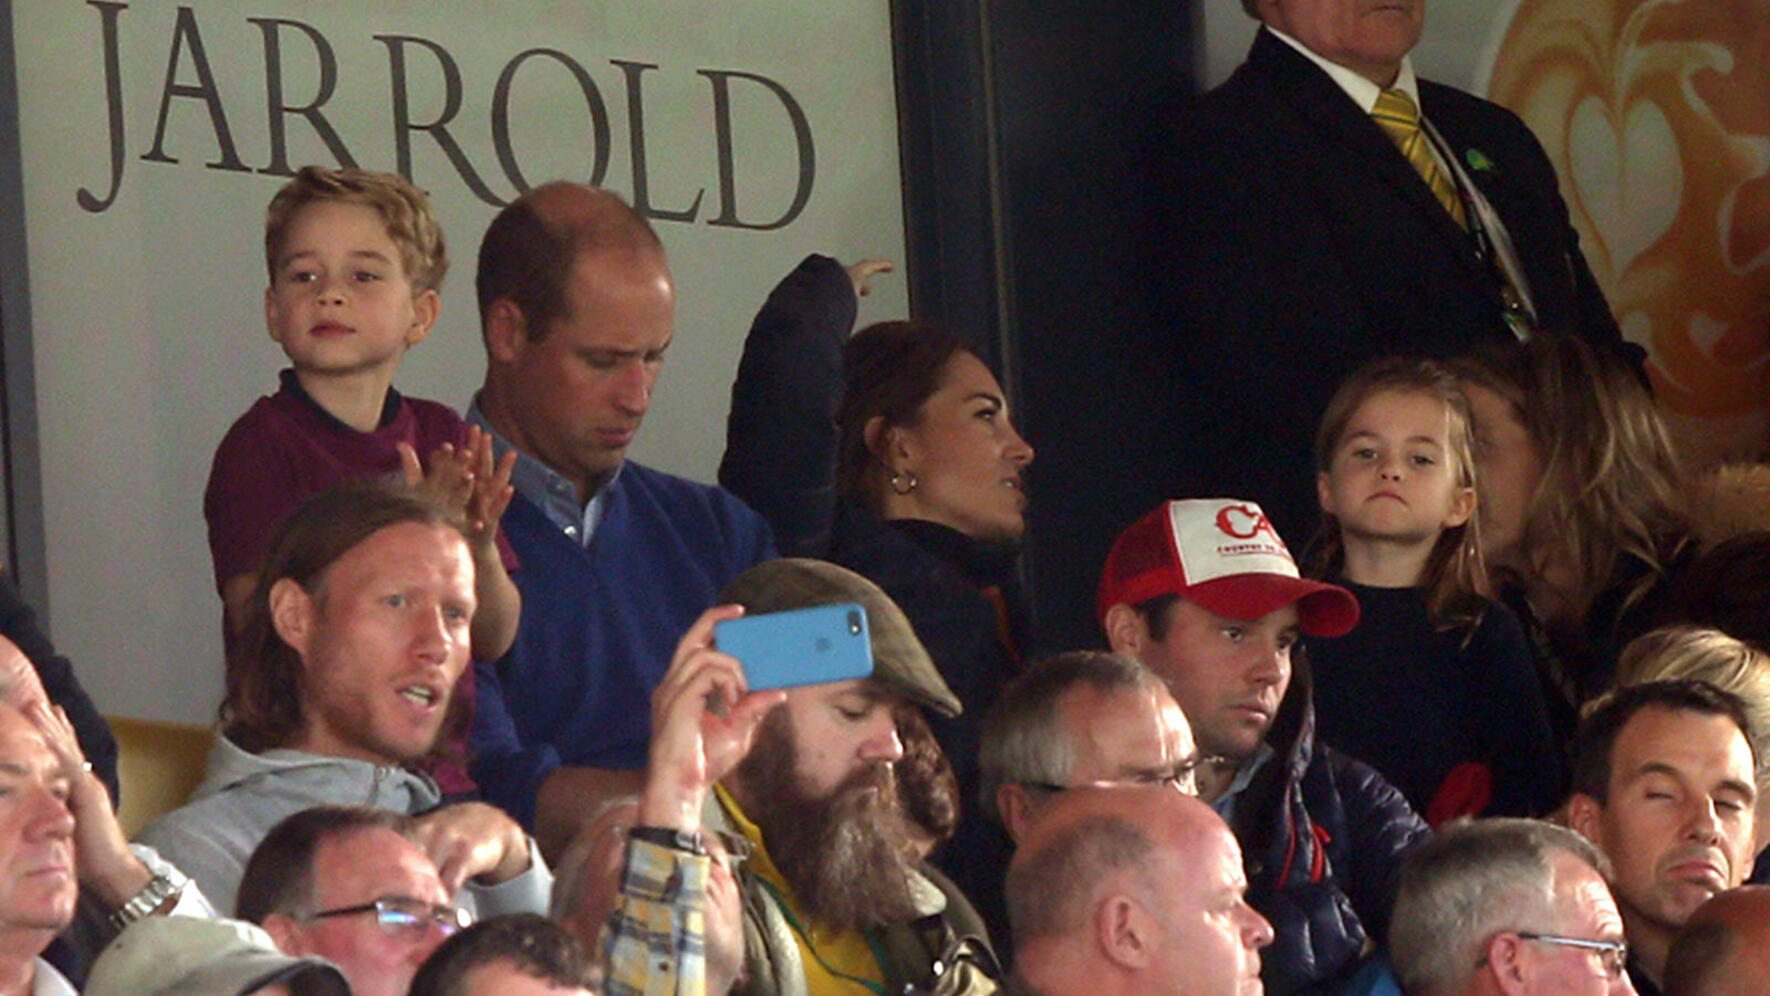 Norwich City v Aston Villa Premier League The Duke and Duchess of Cambridge along with Prince George and Princess Charlotte spotted during the Premier League match at Carrow Road, Norwich PUBLICATIONxNOTxINxUKxCHN Copyright: xPaulxChestertonx FIL-13713-0018